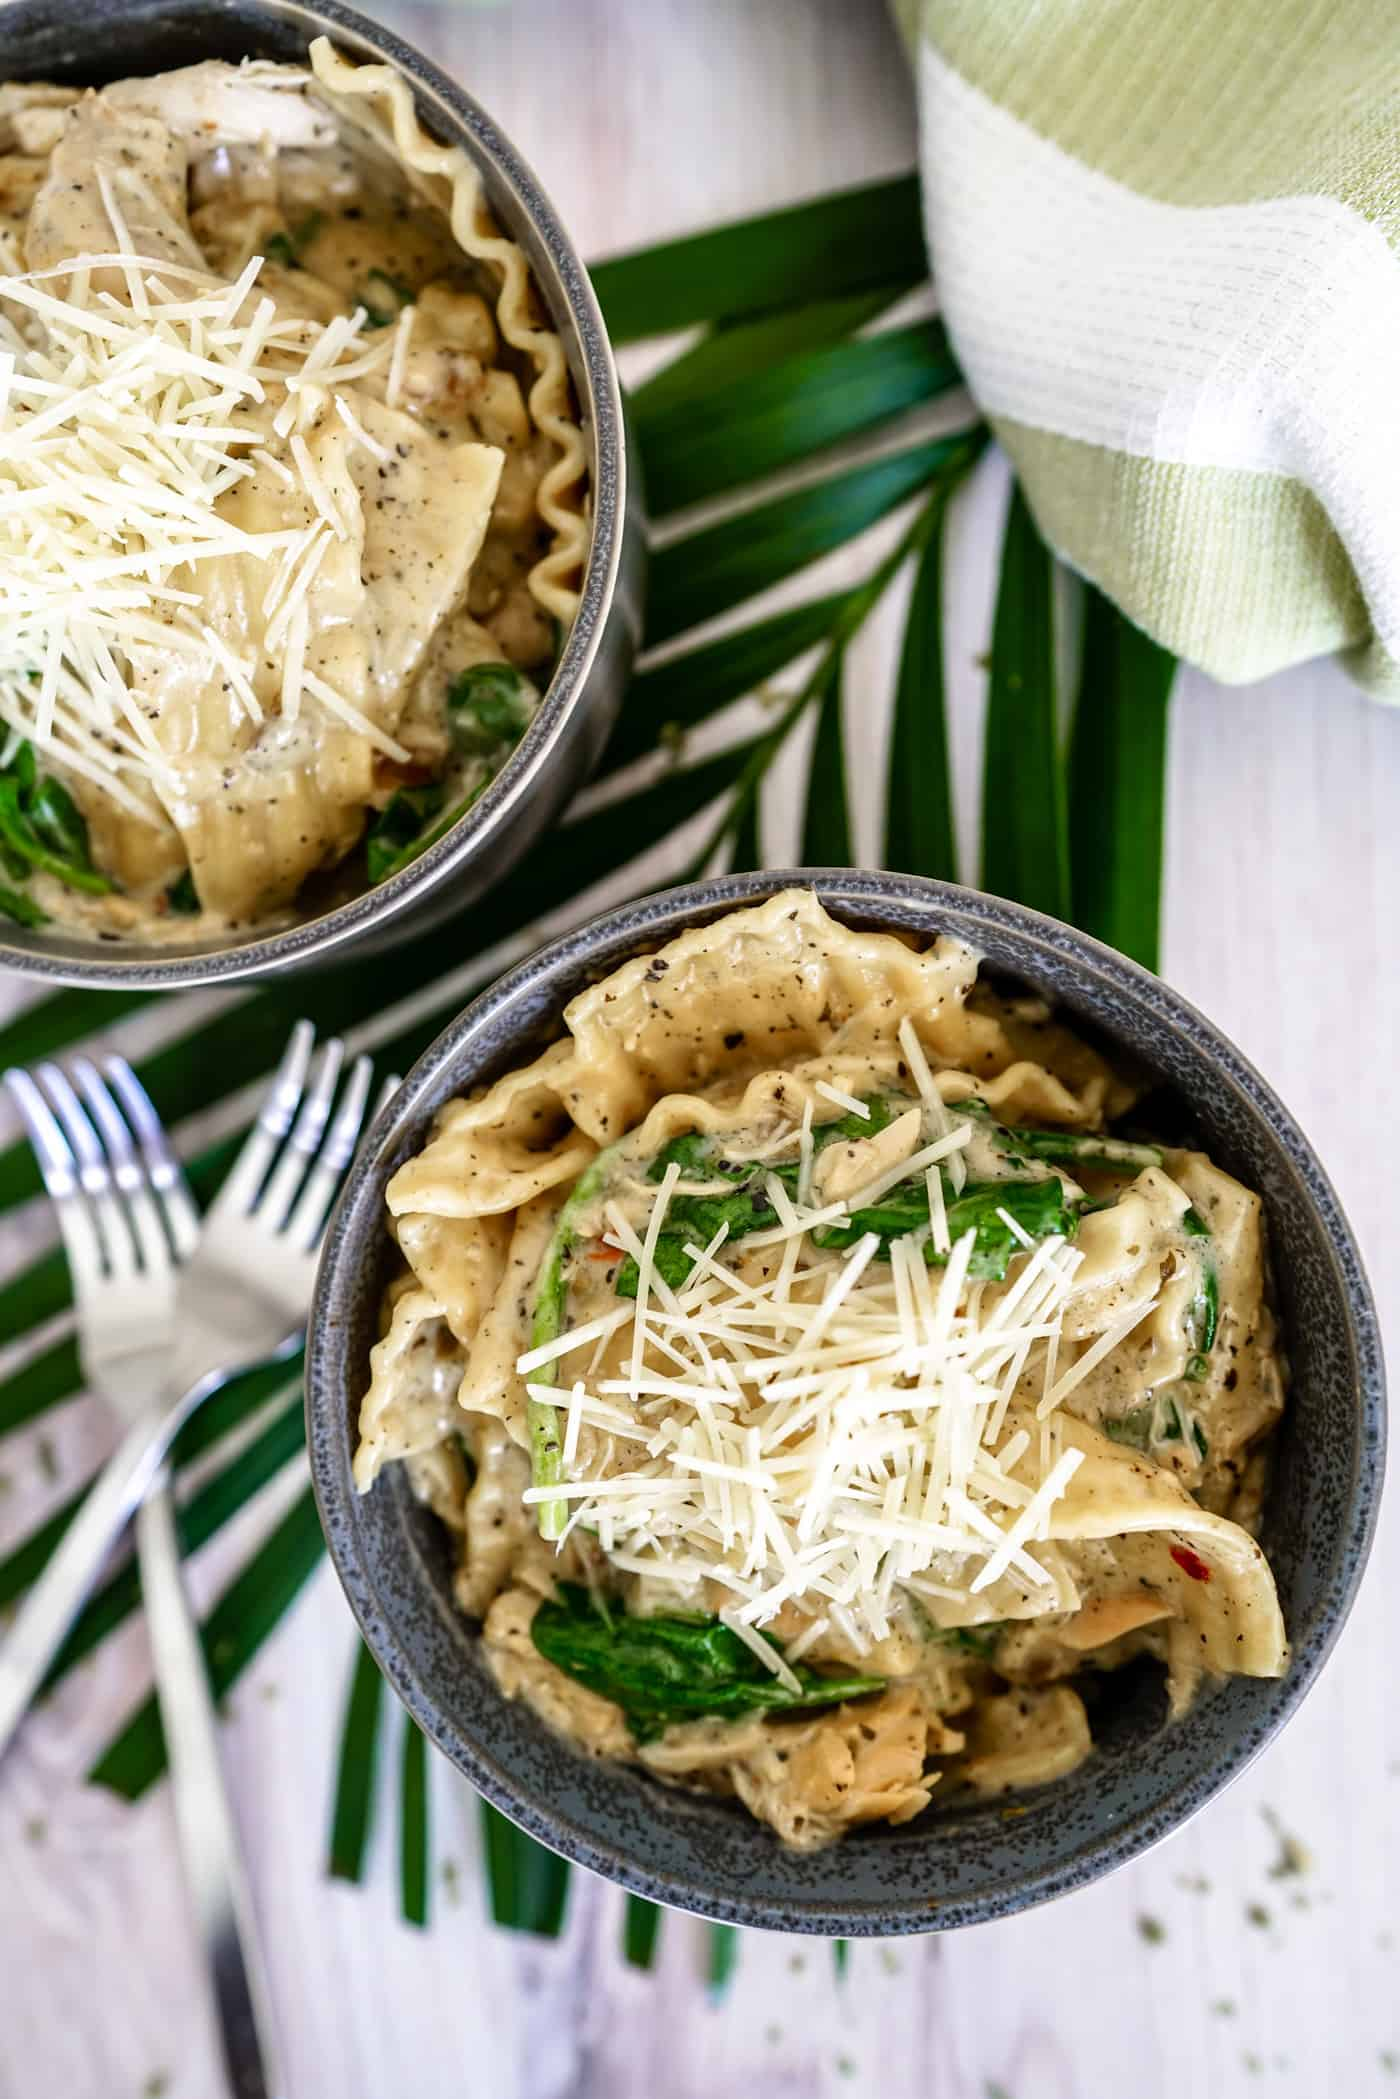 Looking for an easy, quick dinner the family will love?  This Instant Pot Alfredo Lazy Lasagna is a sure fire answer!  Ready in less than 15 minutes, this recipe will have them begging for seconds!